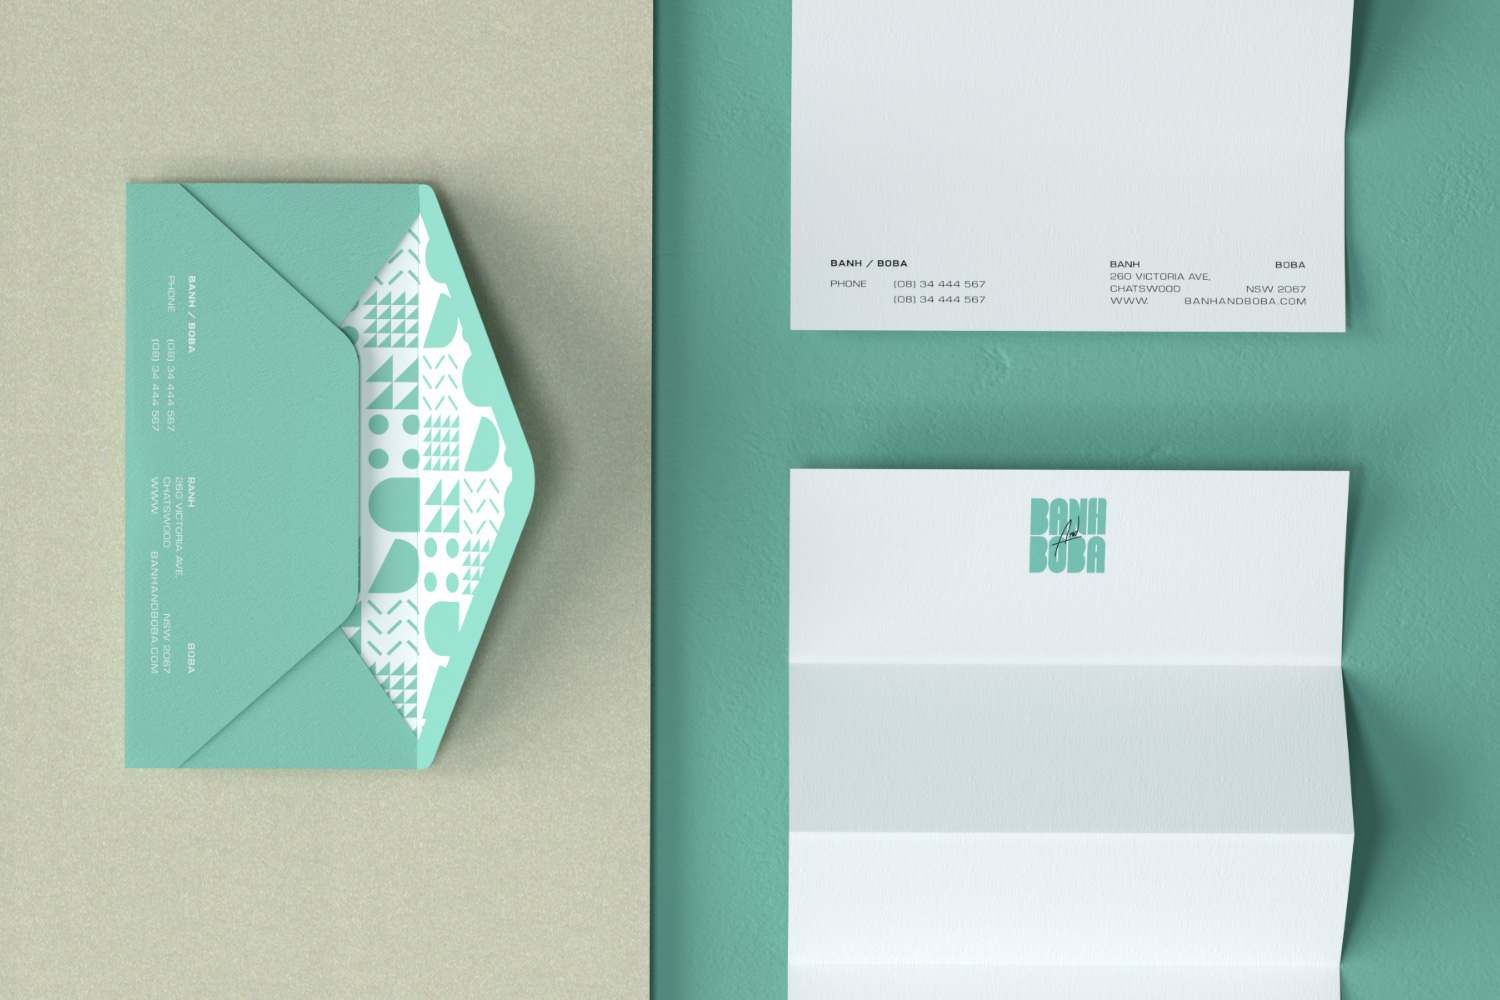 Banh and Boba letterhead and DL envelope